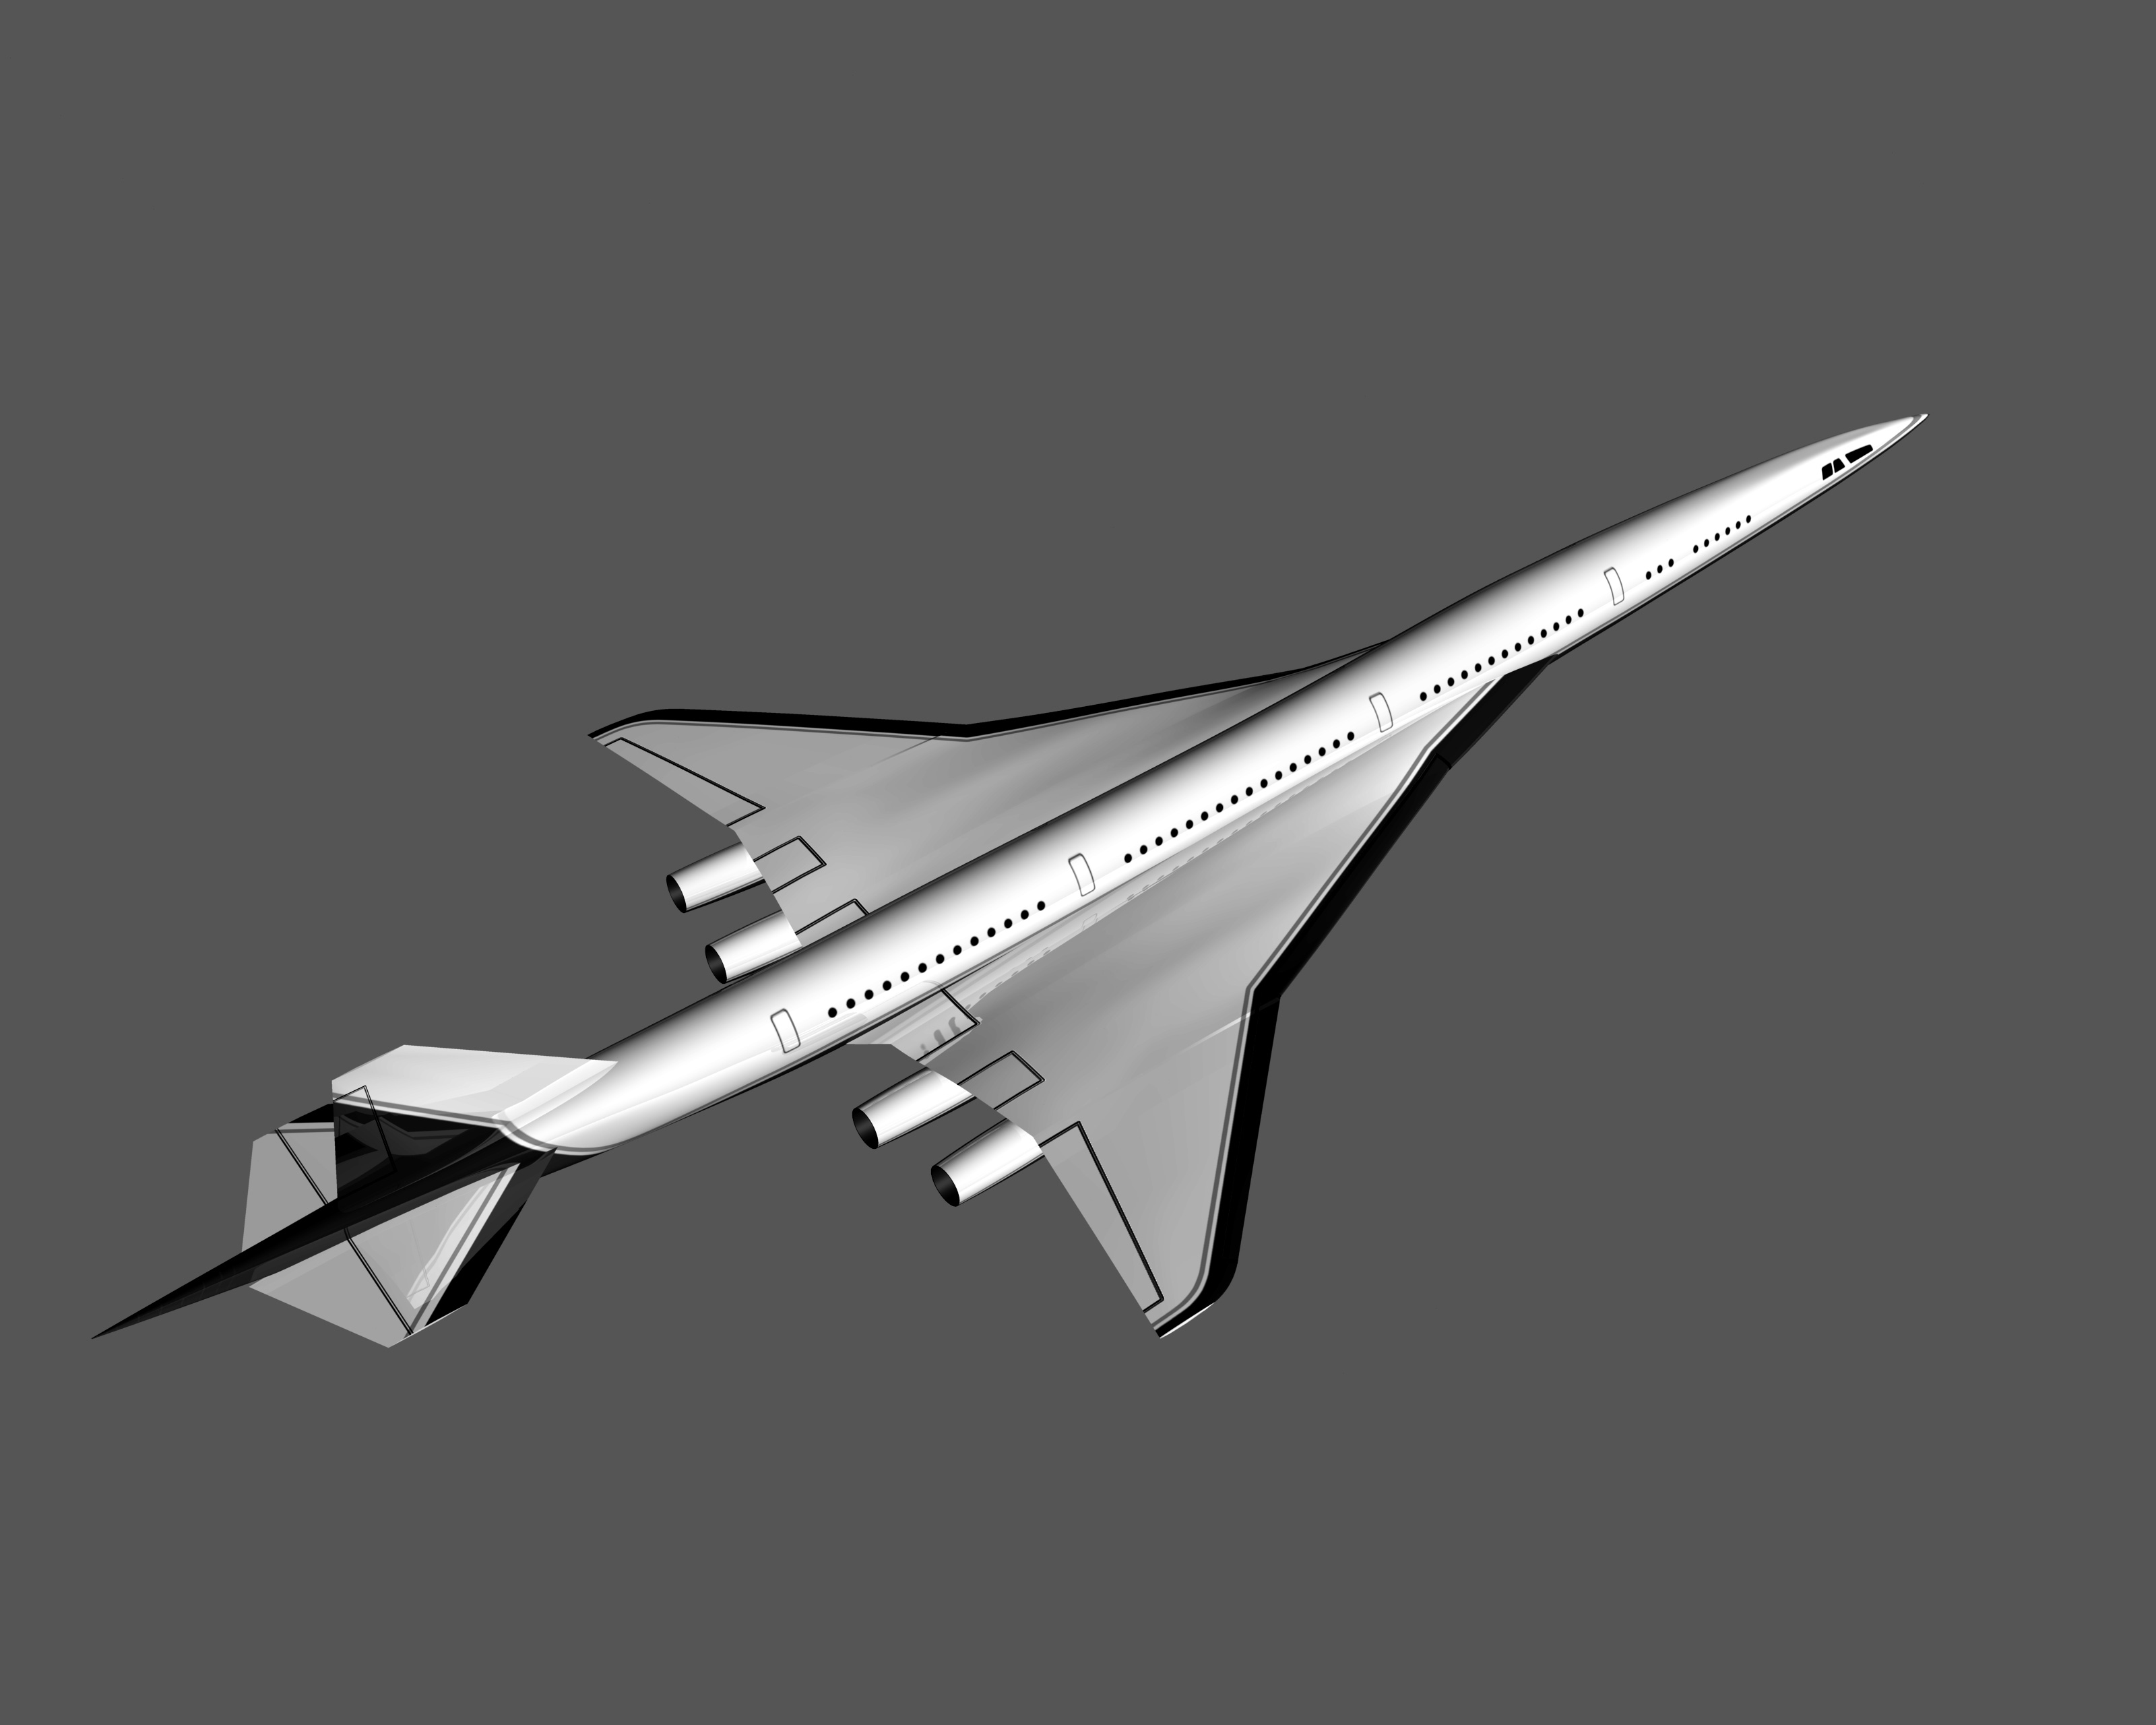 High-Speed Civil Transport concept